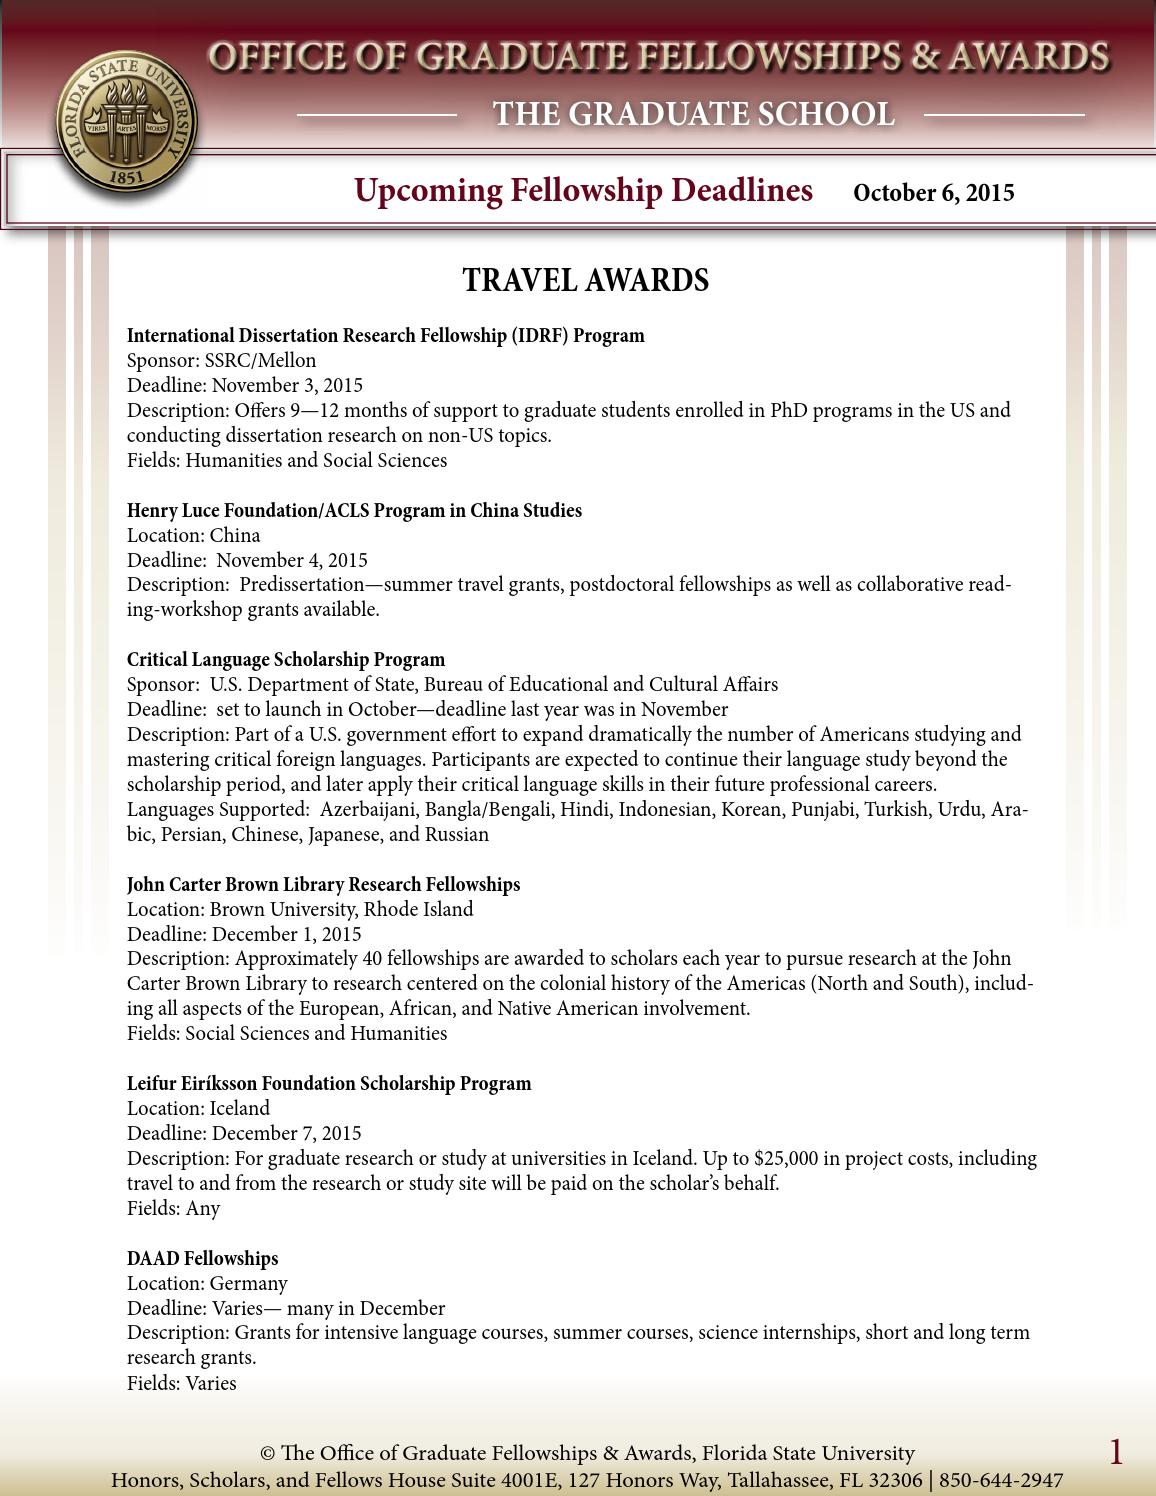 OGFA Upcoming Fellowship Deadlines Oct-Dec 2015 by The